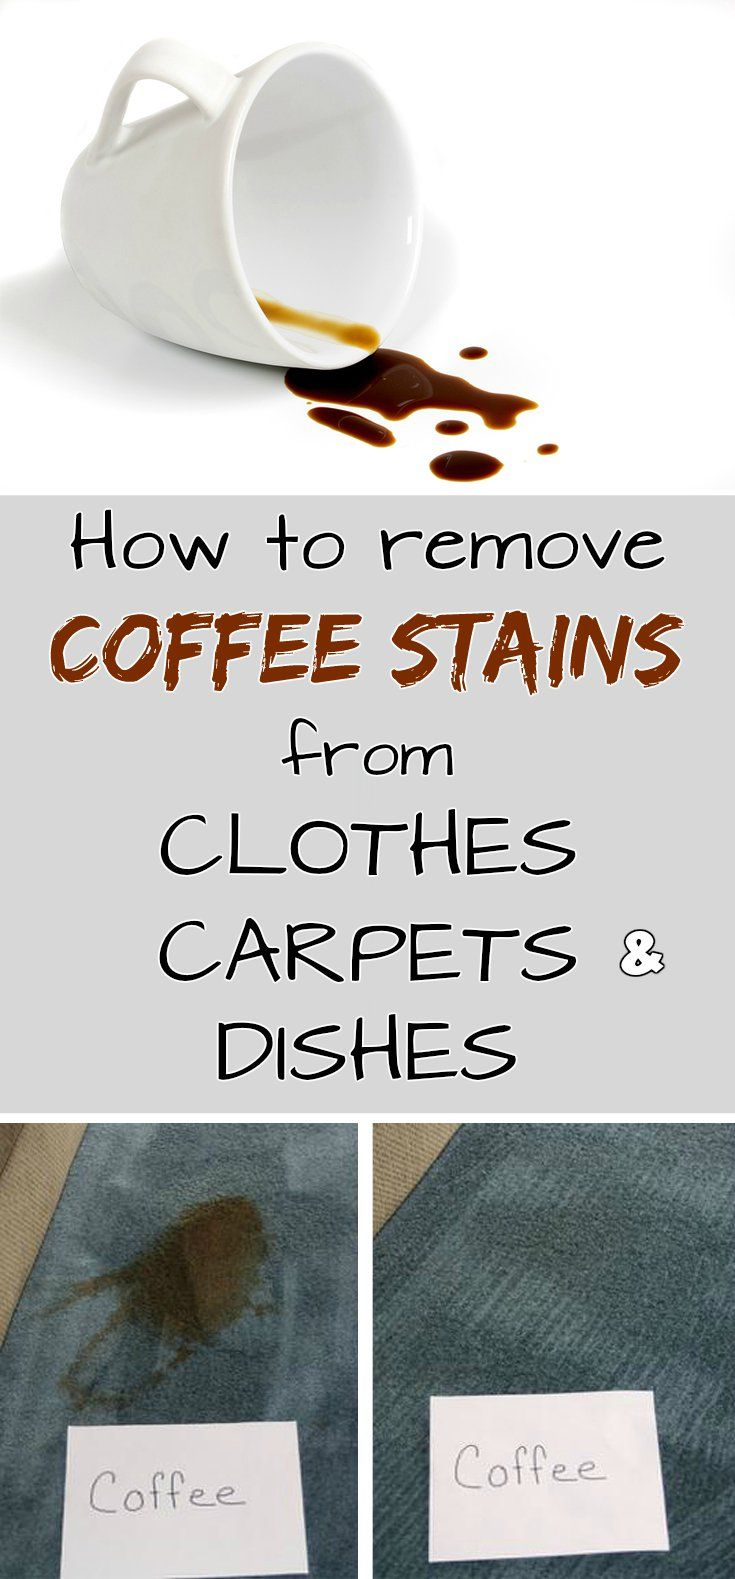 How To Remove Coffee Stains >> How To Remove Coffee Stains From Clothes Carpets And Dishes